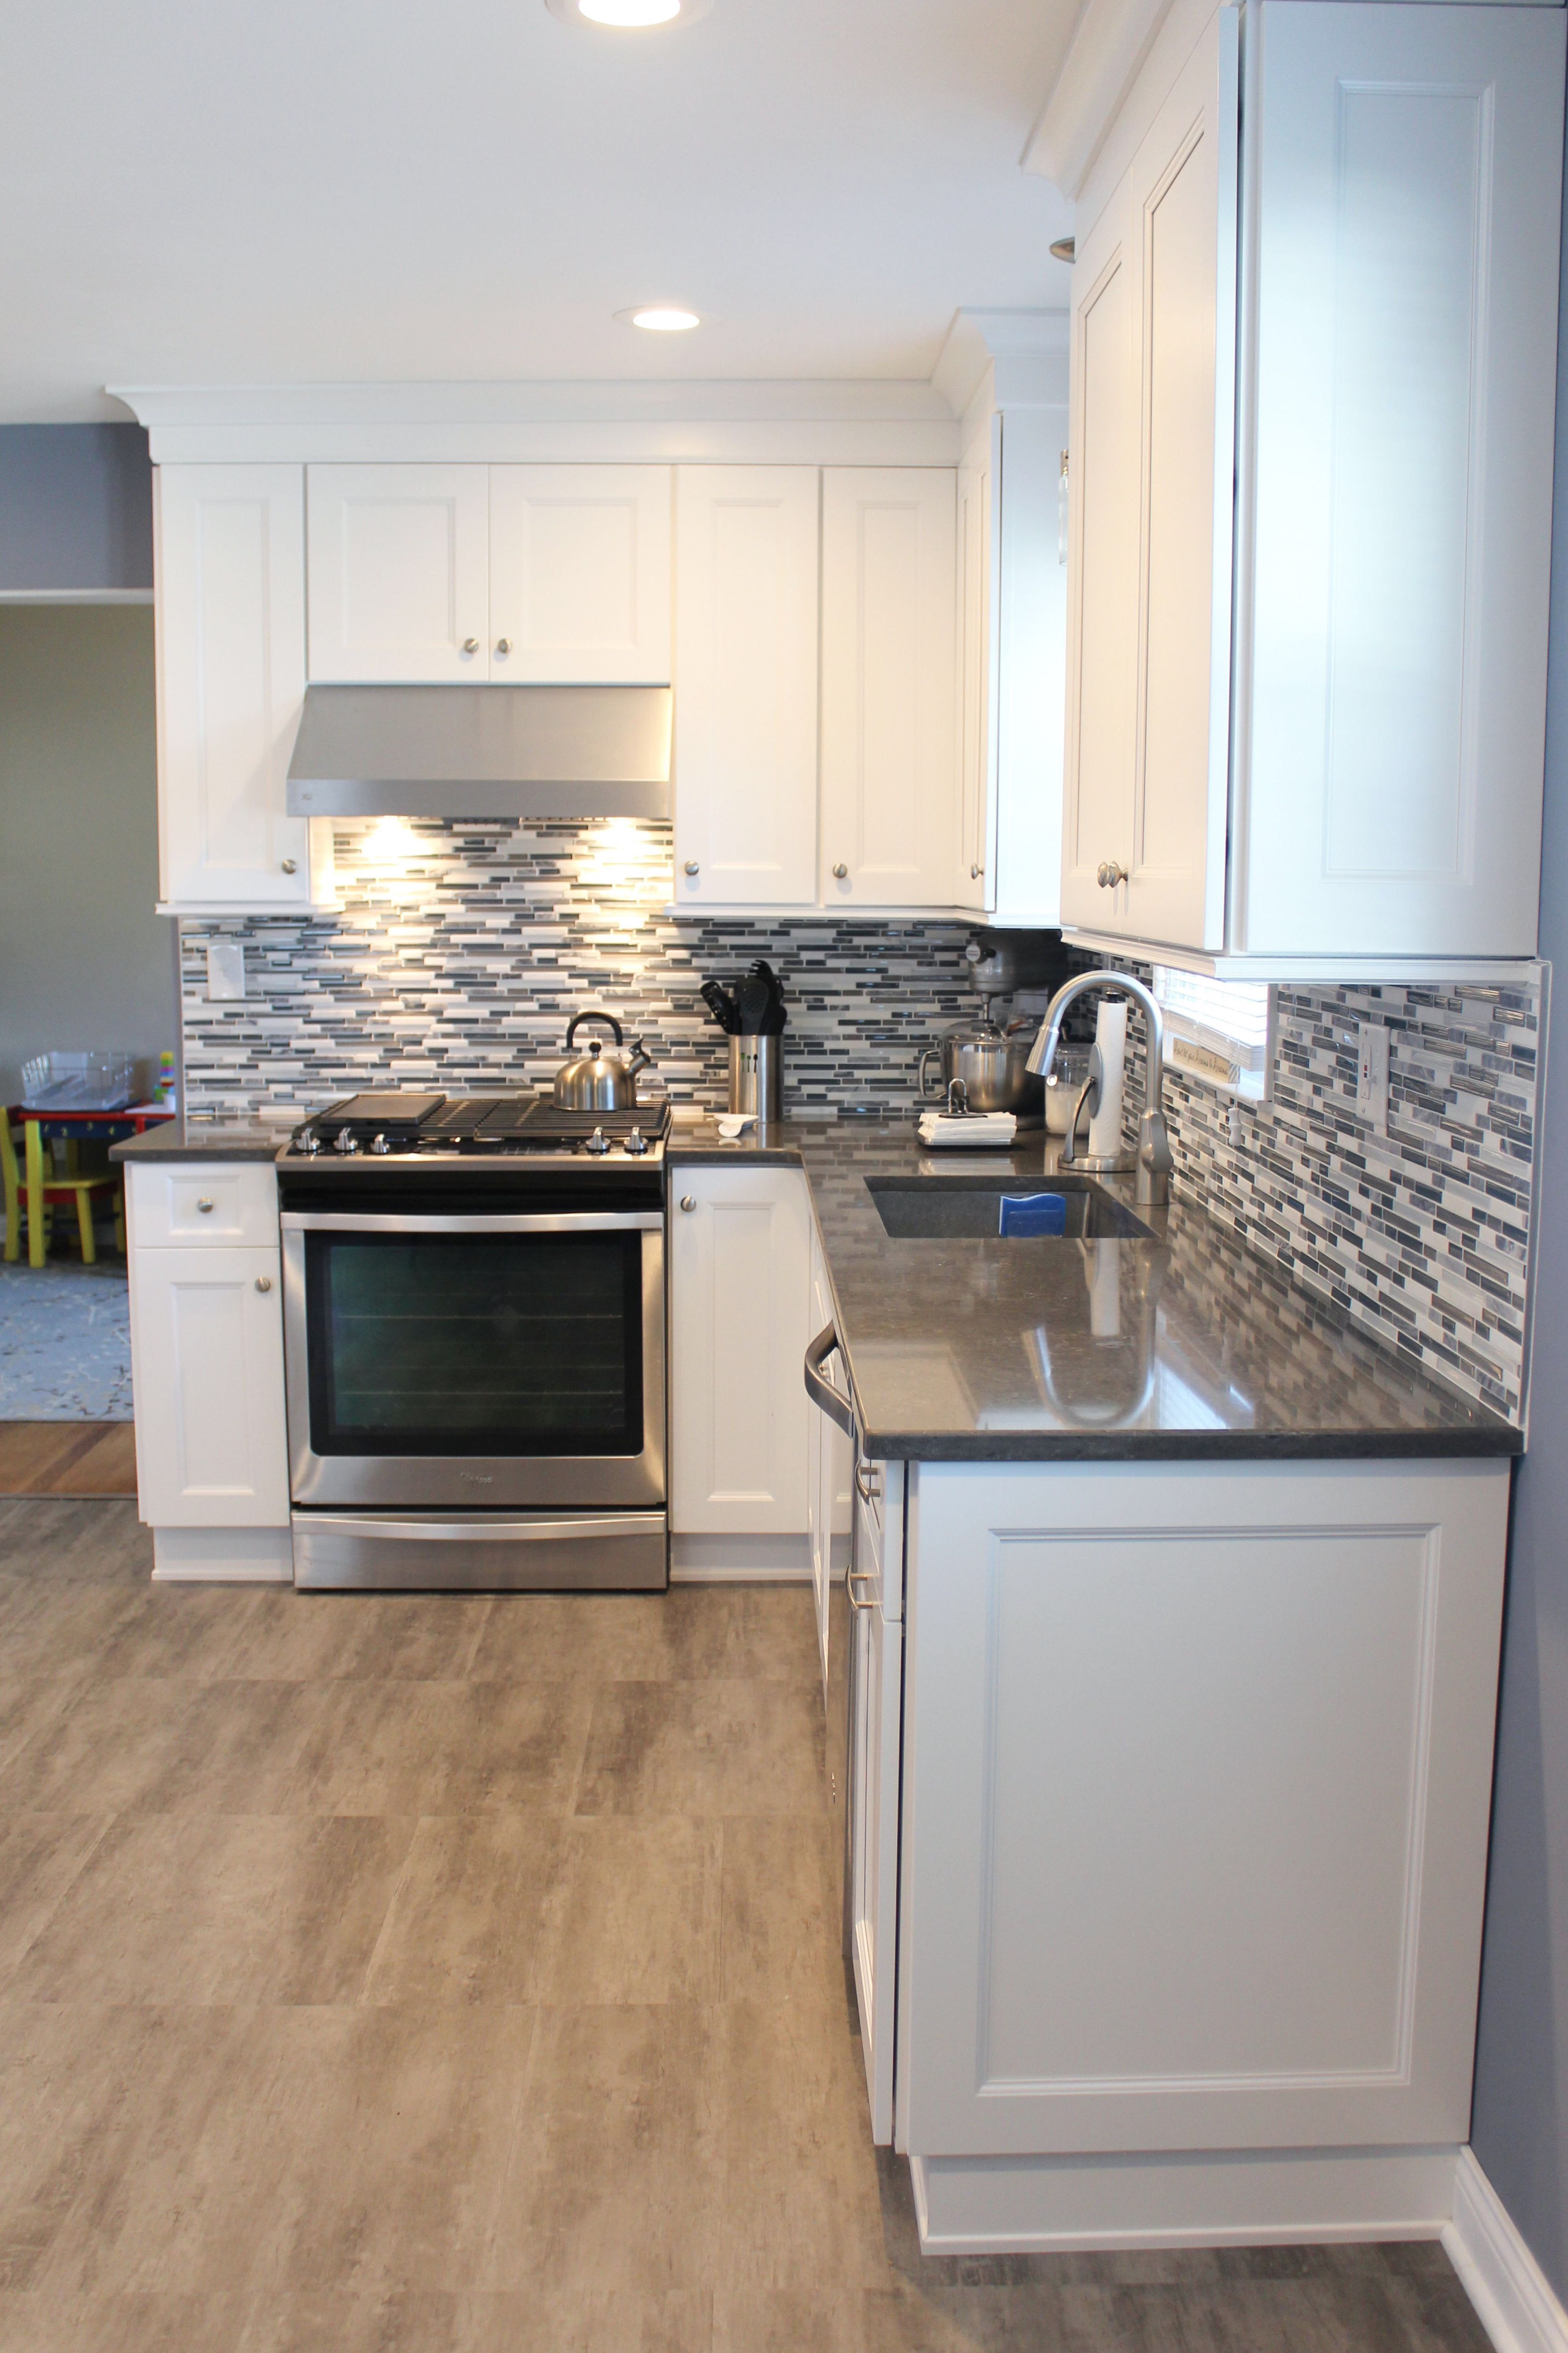 Pin On Kitchen Designs Heart Of The Home Kitchens